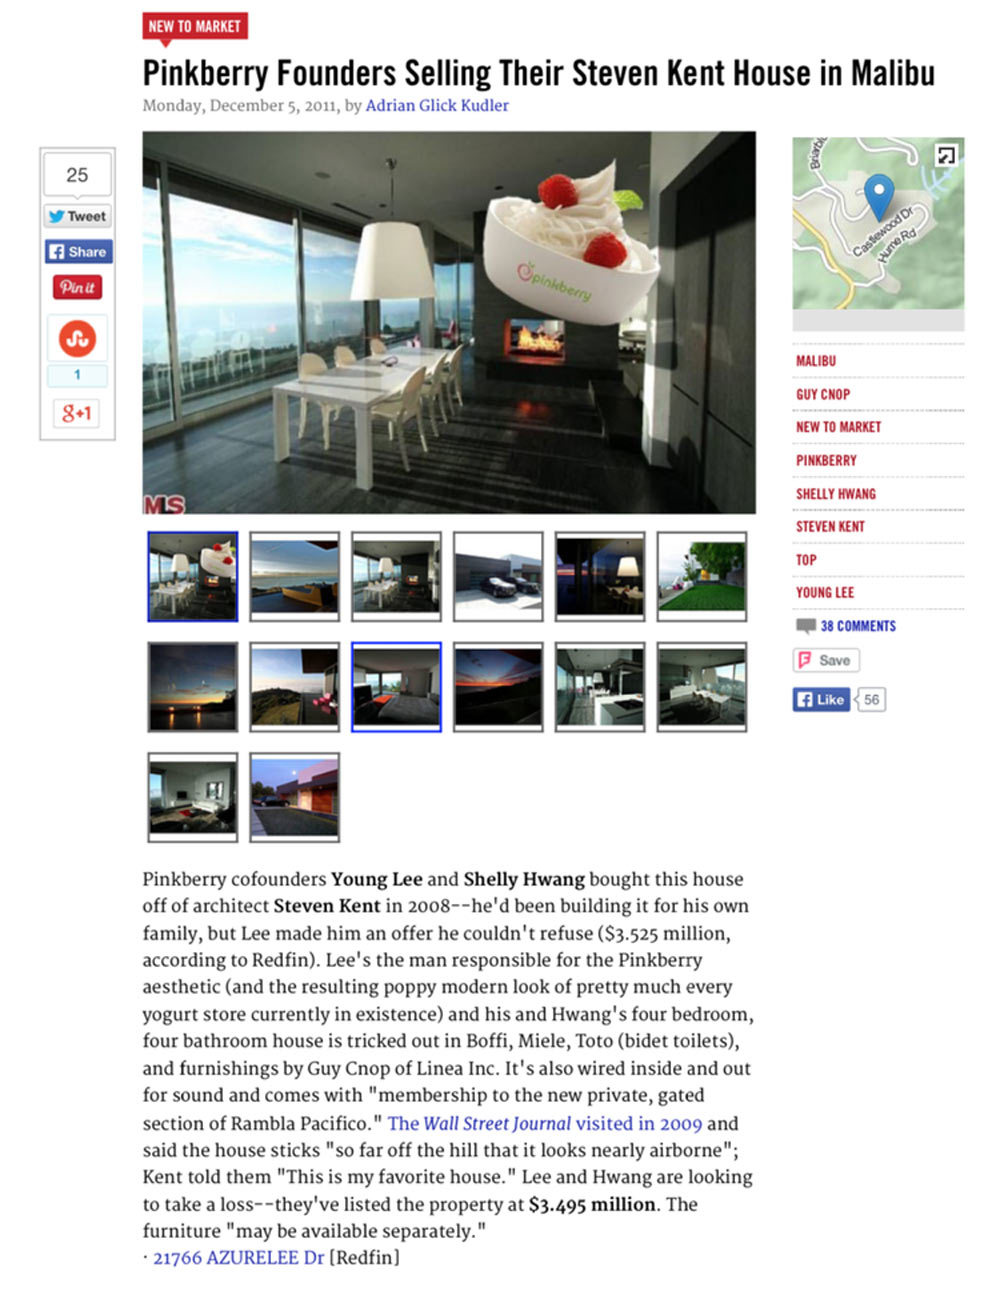 Pinkberry-Founders-Selling-Their-Steven-Kent-Designed-House